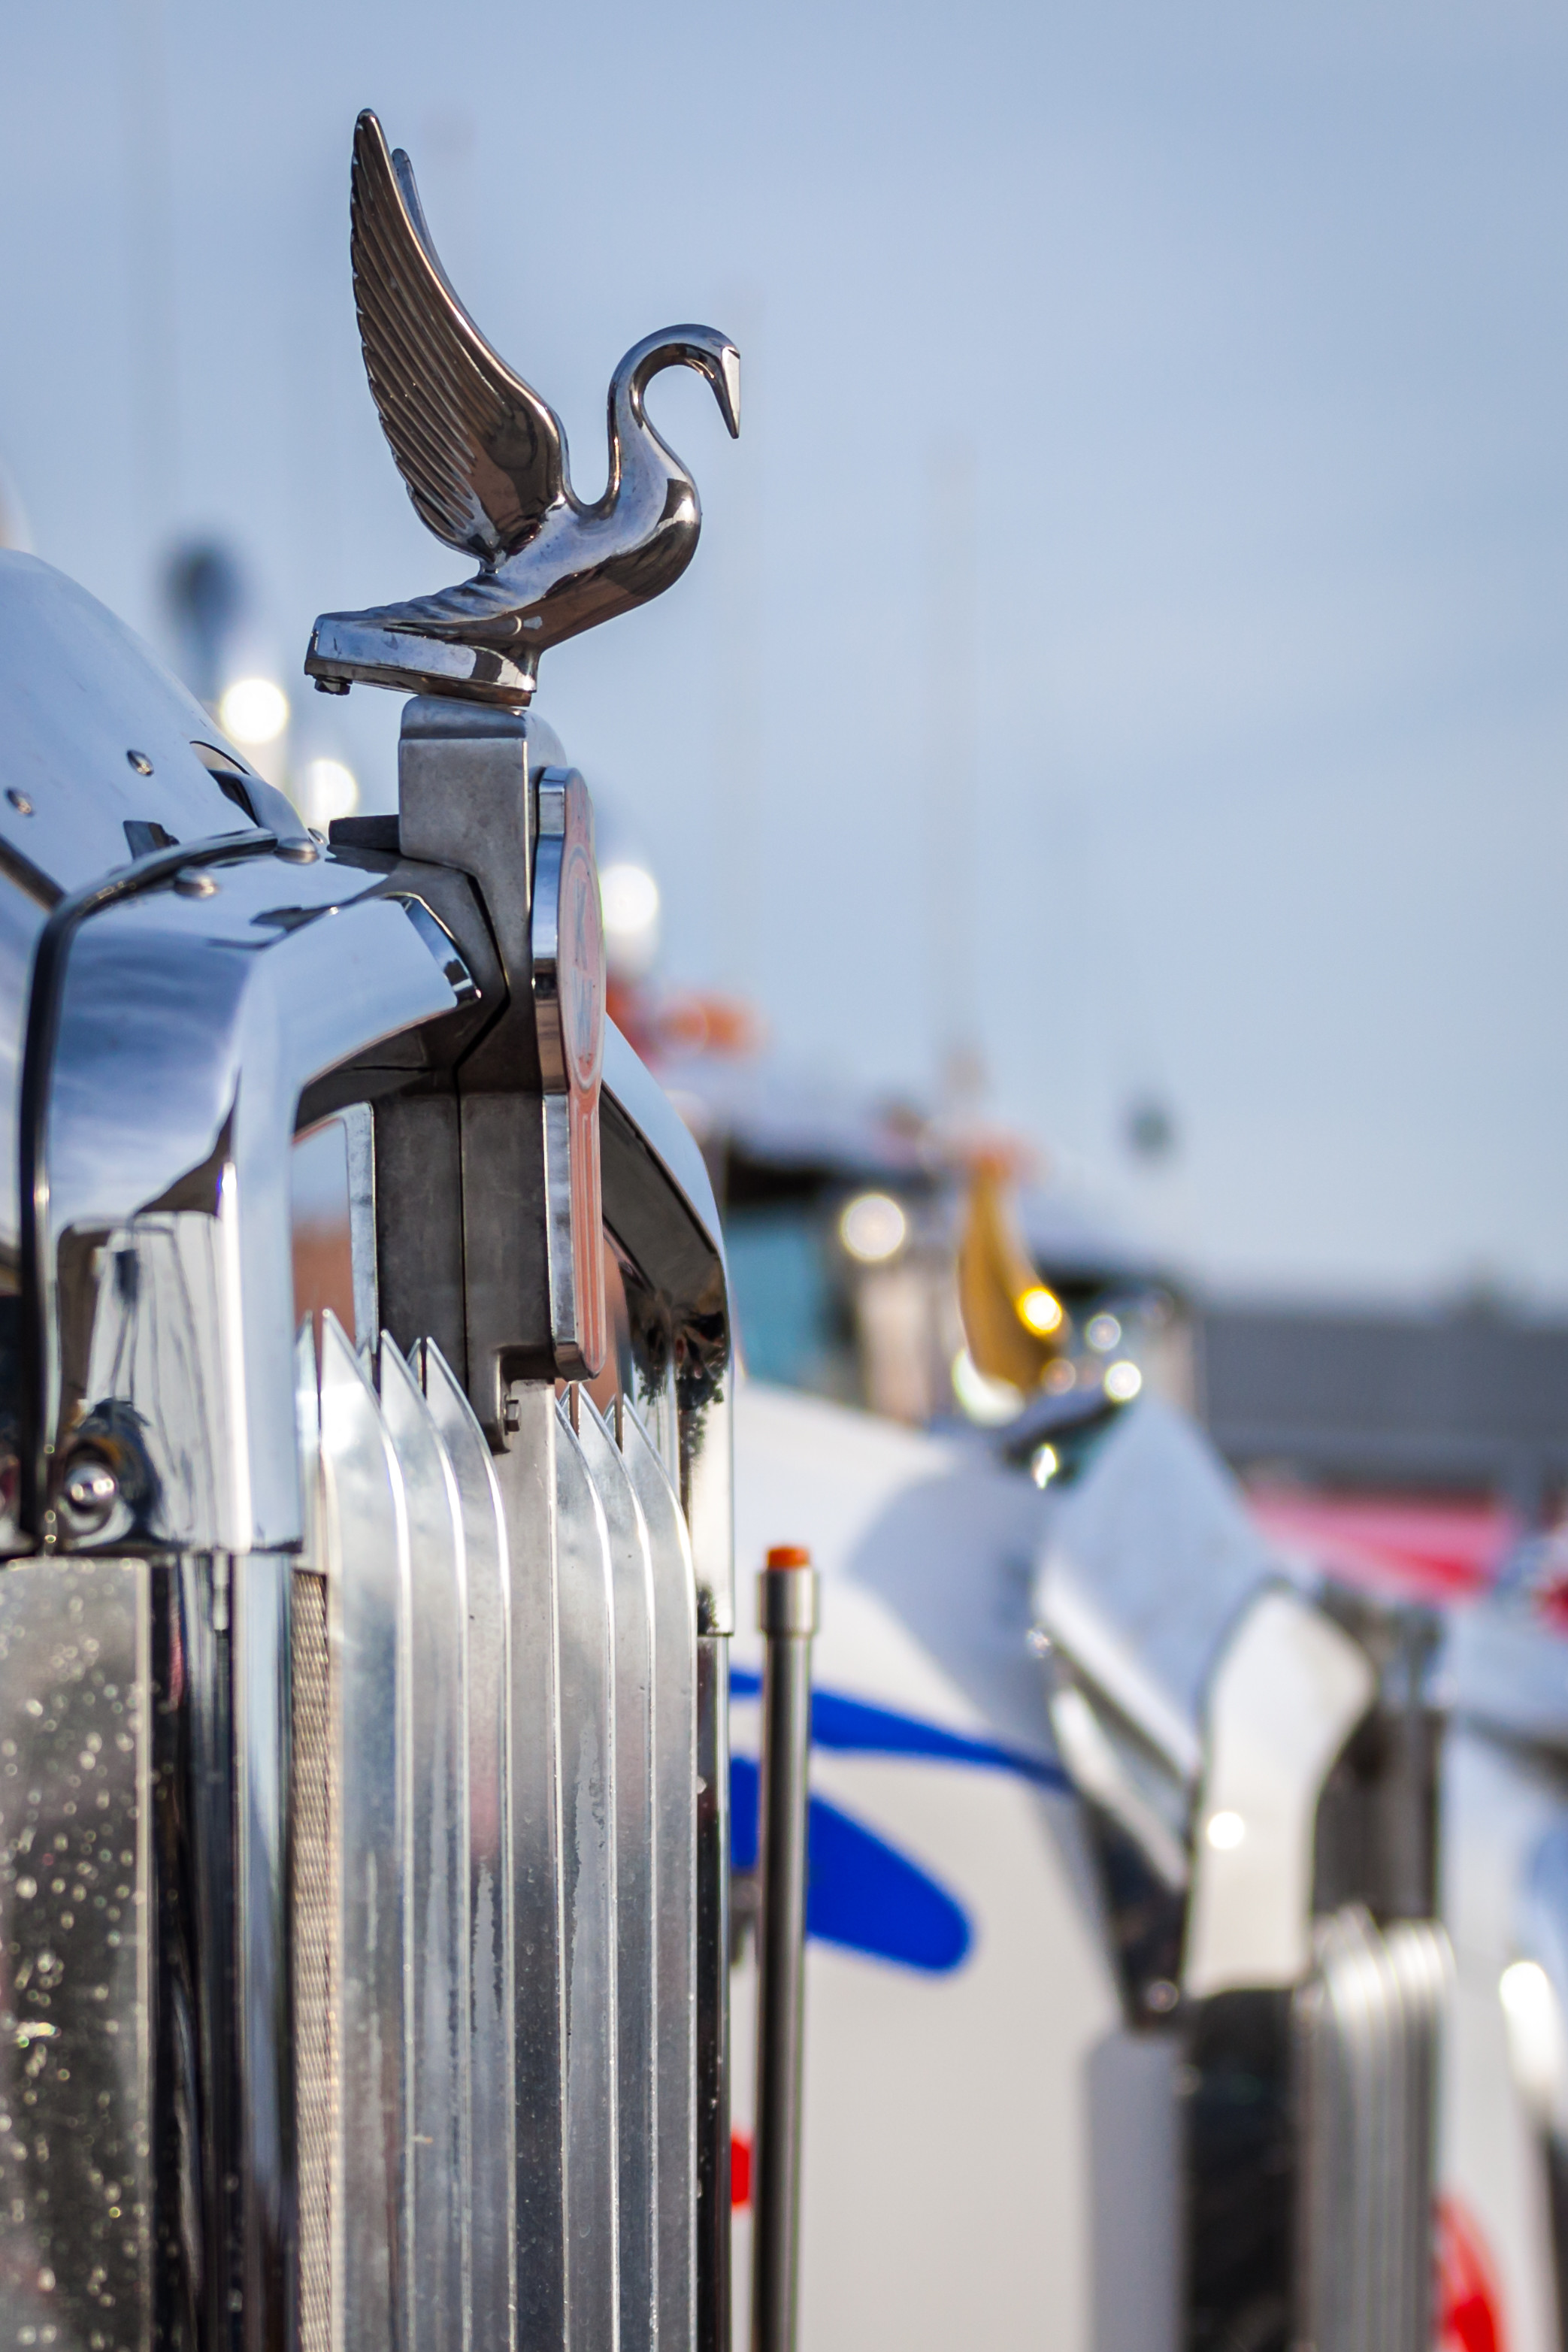 2086x3129 high resolution kenworth truck wallpaper for iphone to download.